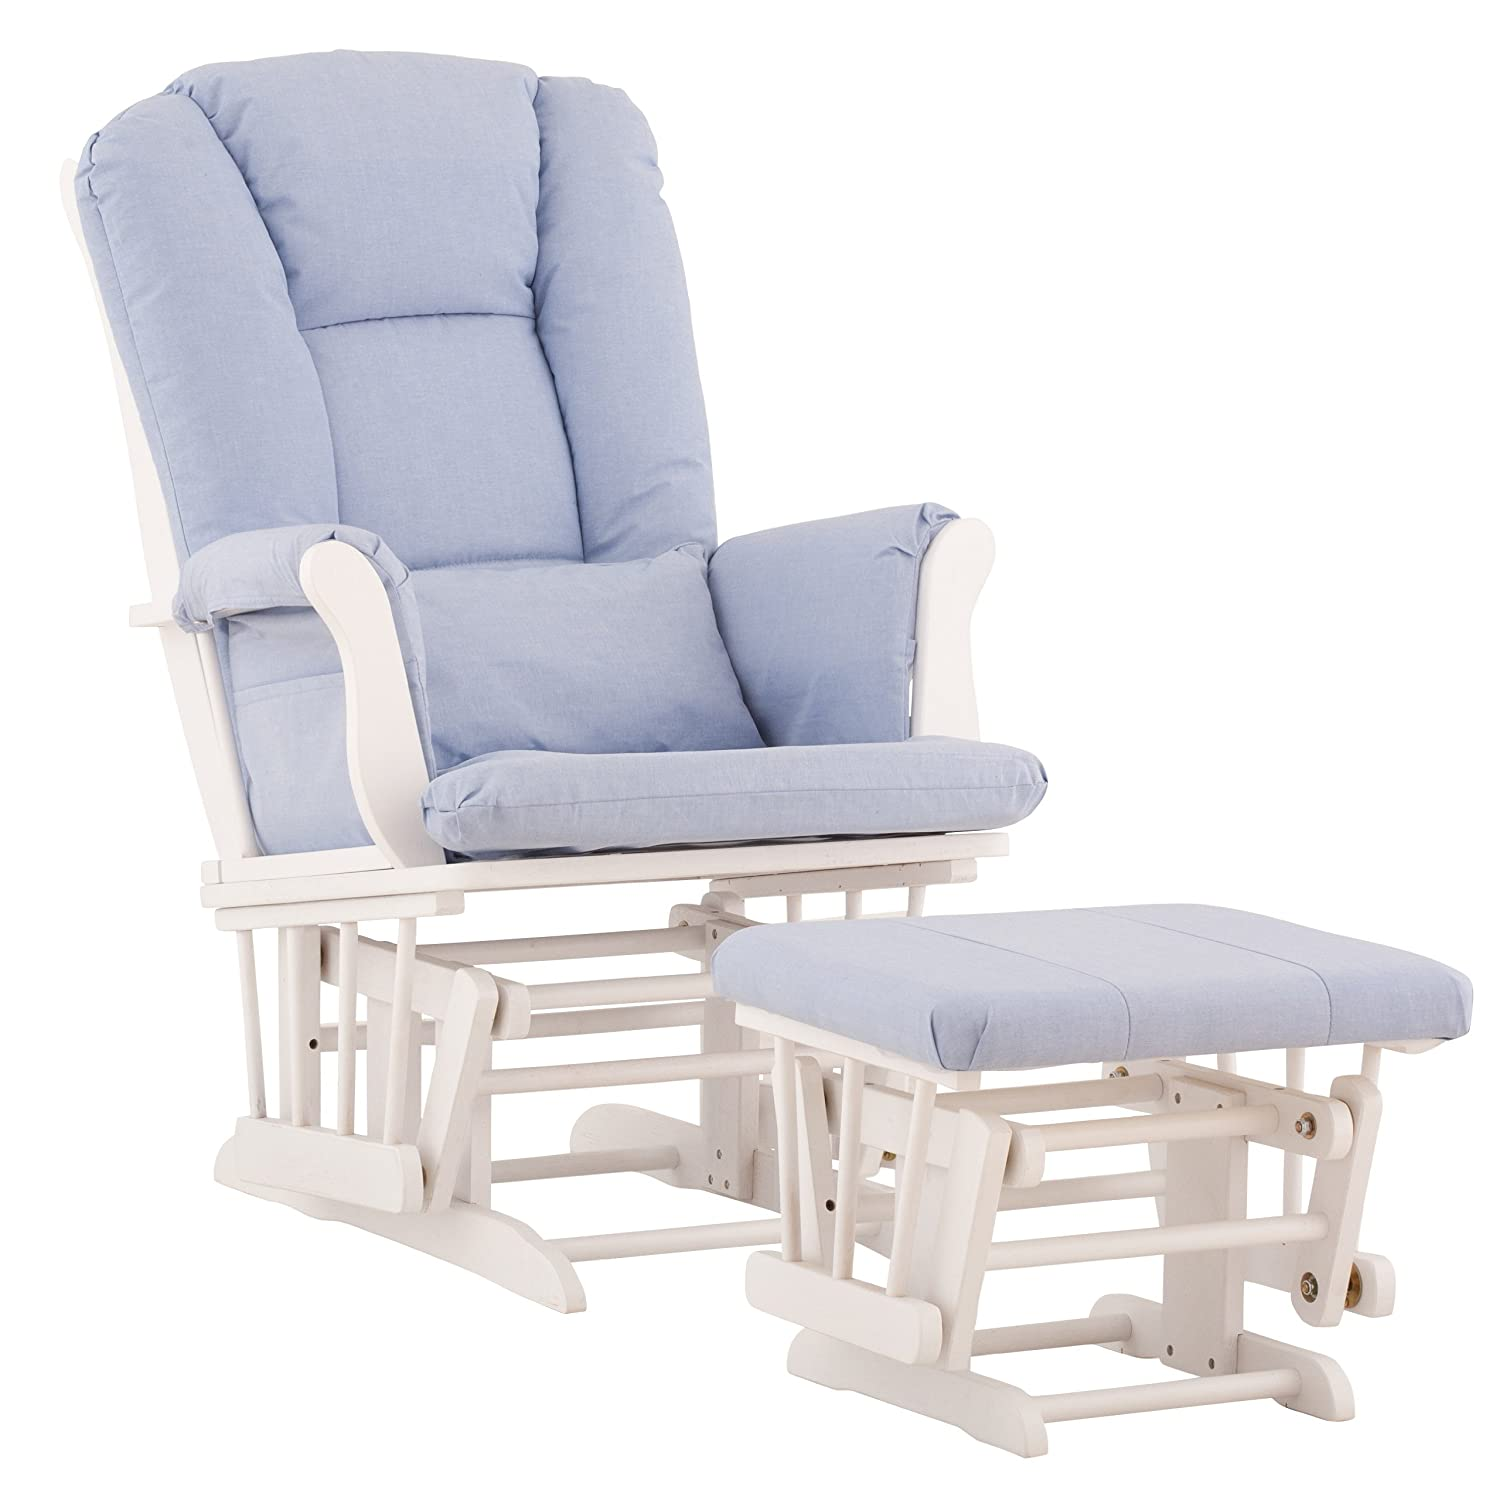 Superior Amazon.com: Stork Craft Tuscany Custom Glider And Ottoman With Free Lumbar  Pillow, White/Blue: Baby